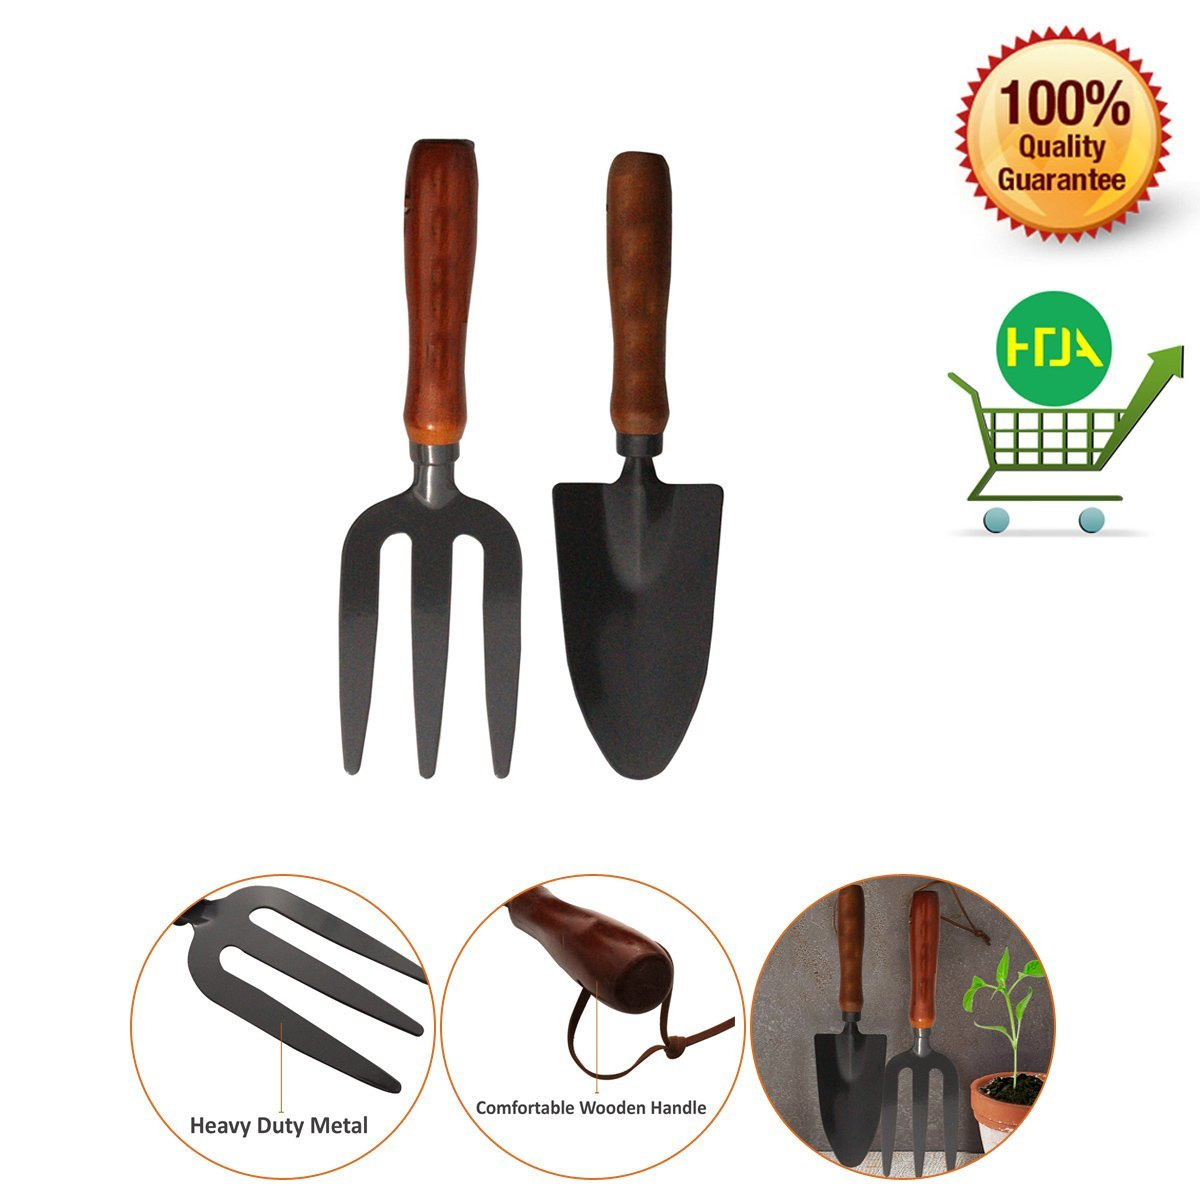 2 Pcs-Hand Tools- Garden Fork & Spade Set- Ideal & Essential - Durable Gardening Set Schone Products (UK)